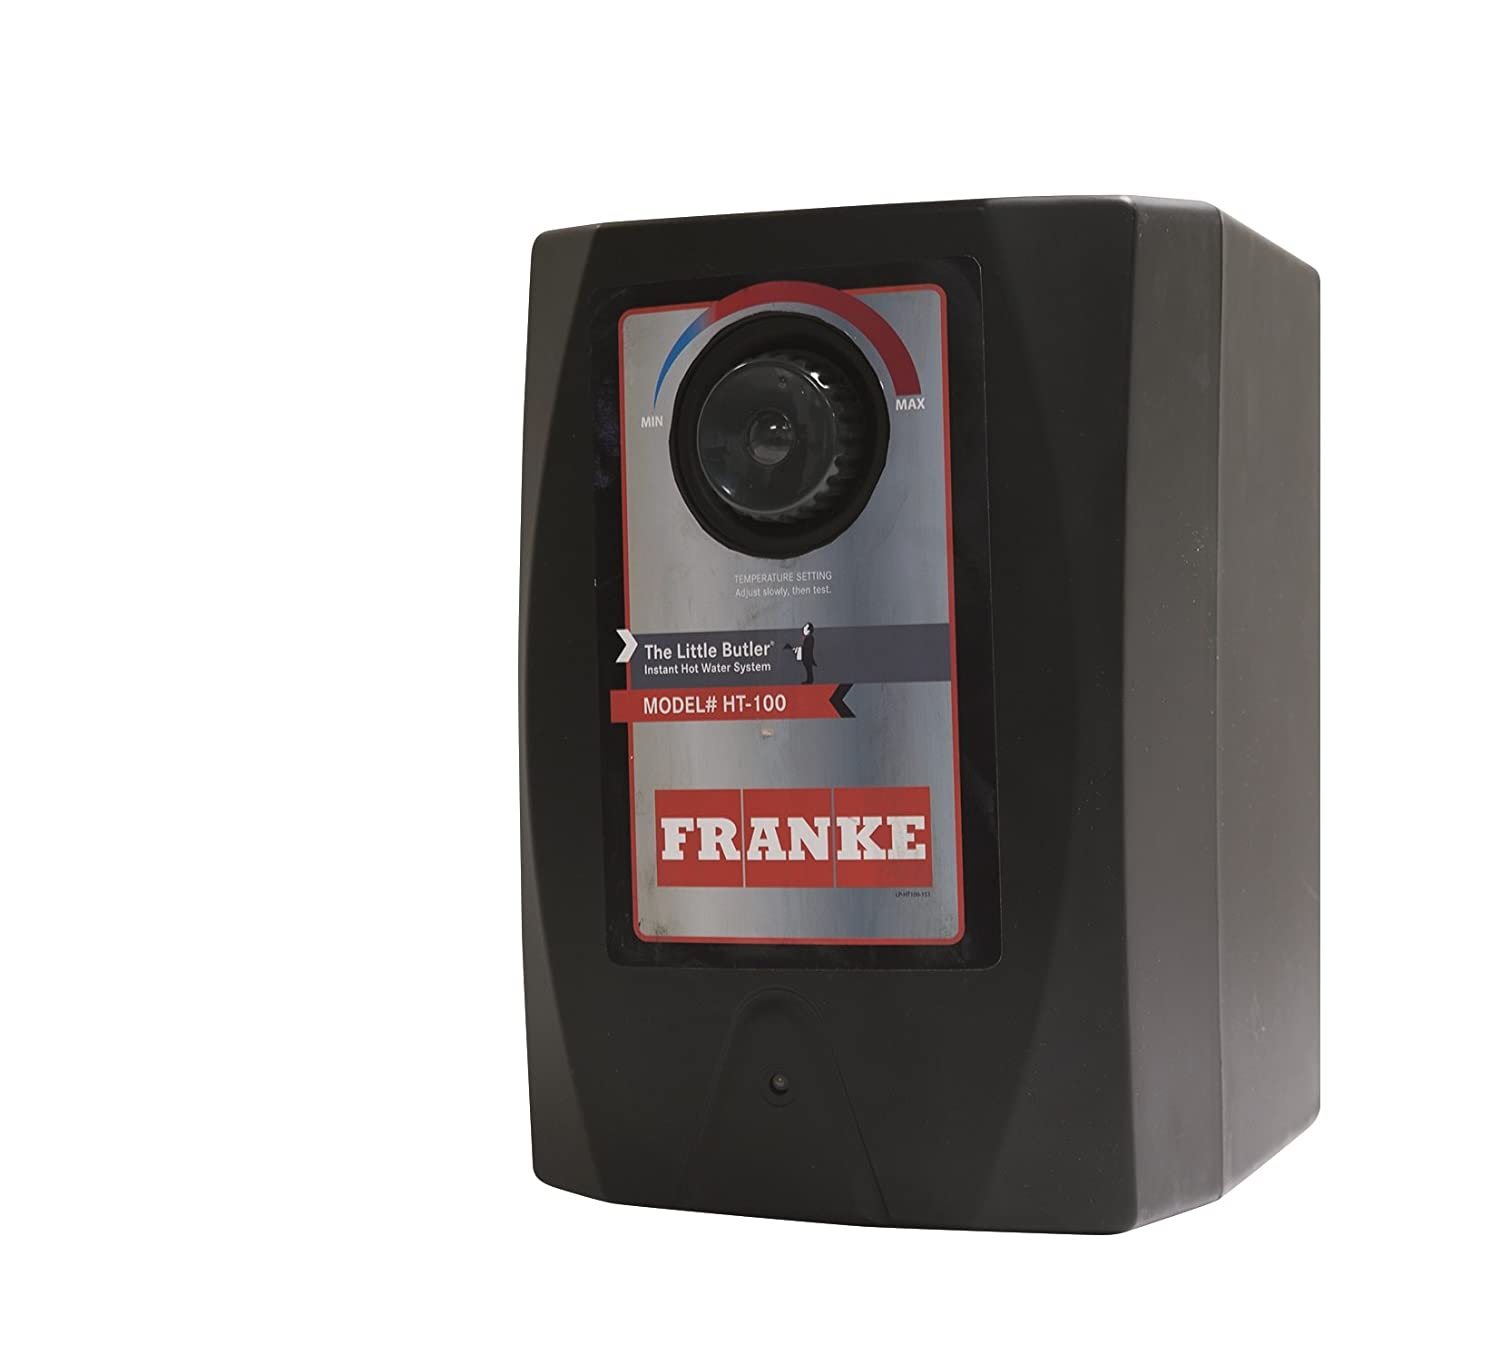 Franke HT-100 Heating tank, 12 inch, Stainless Steel